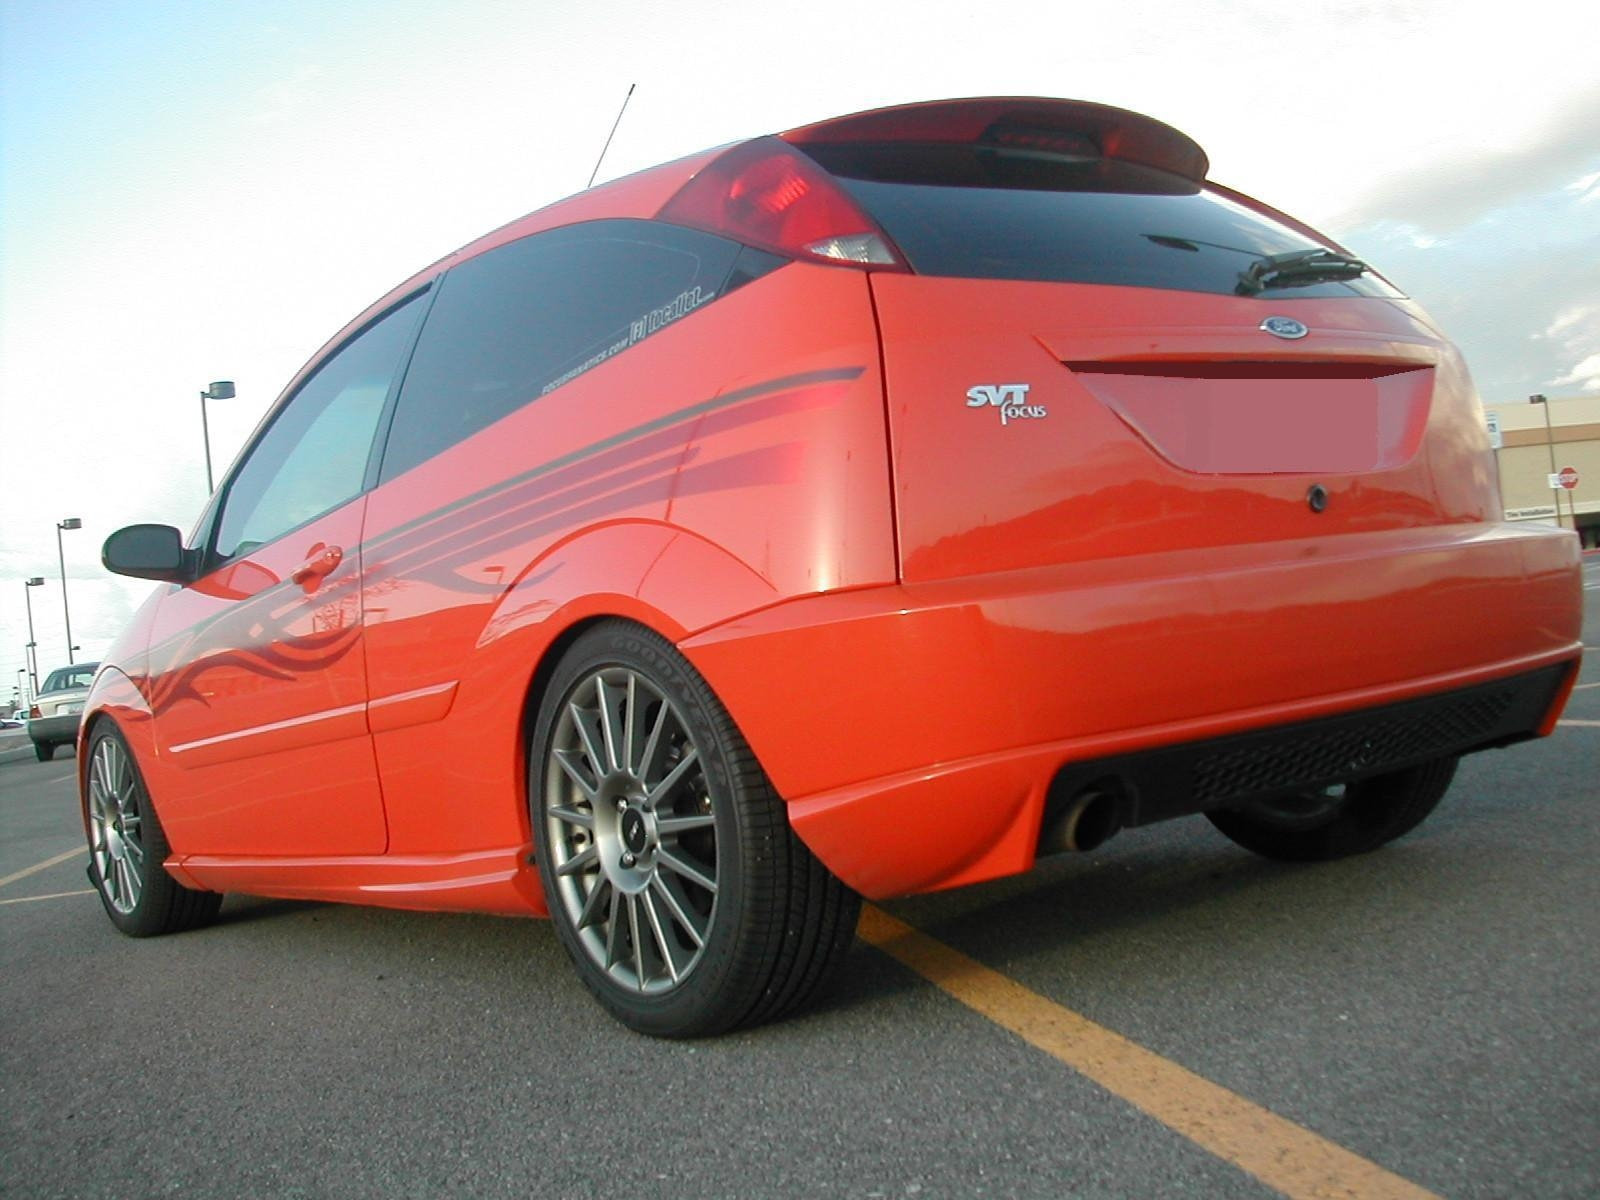 95mazdaprecidia's 2003 Ford Focus